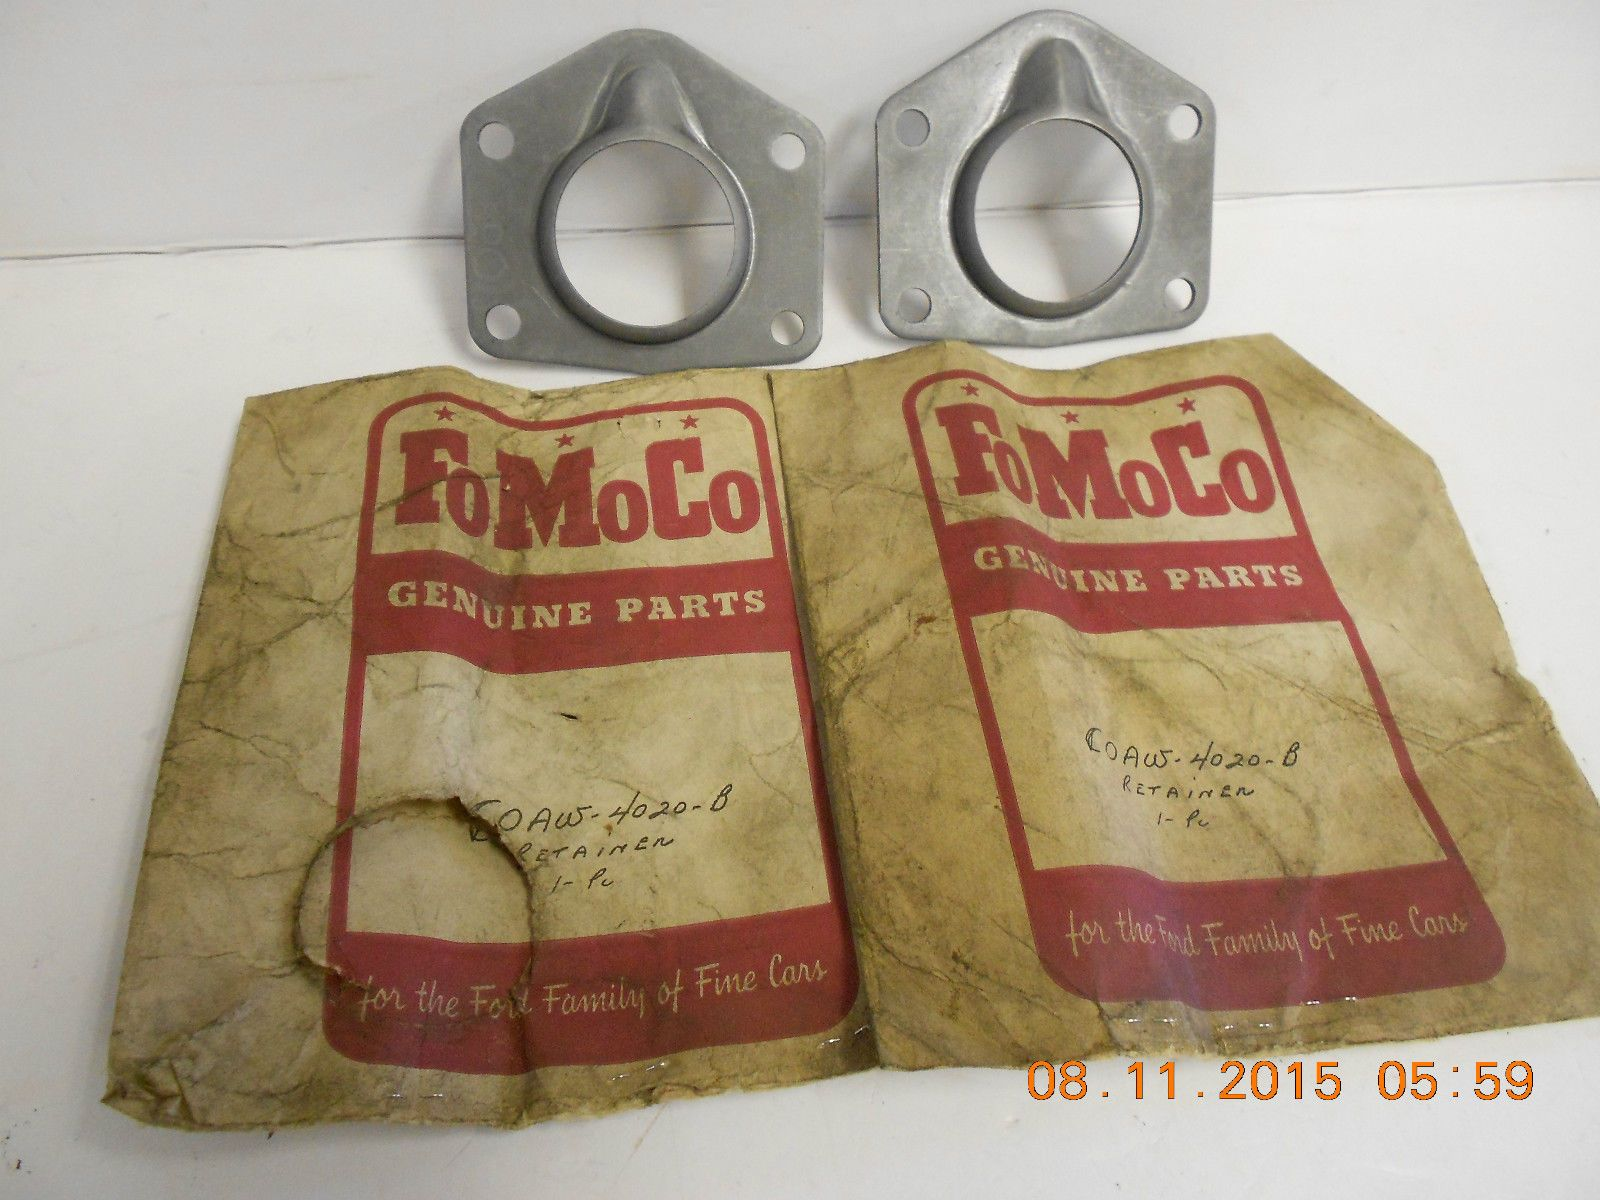 1963 ford galaxie parts ebay - Rear Wheel Bearing Outer Retainer Mustang Fairlane Falcon Cougar Galaxie Ebay